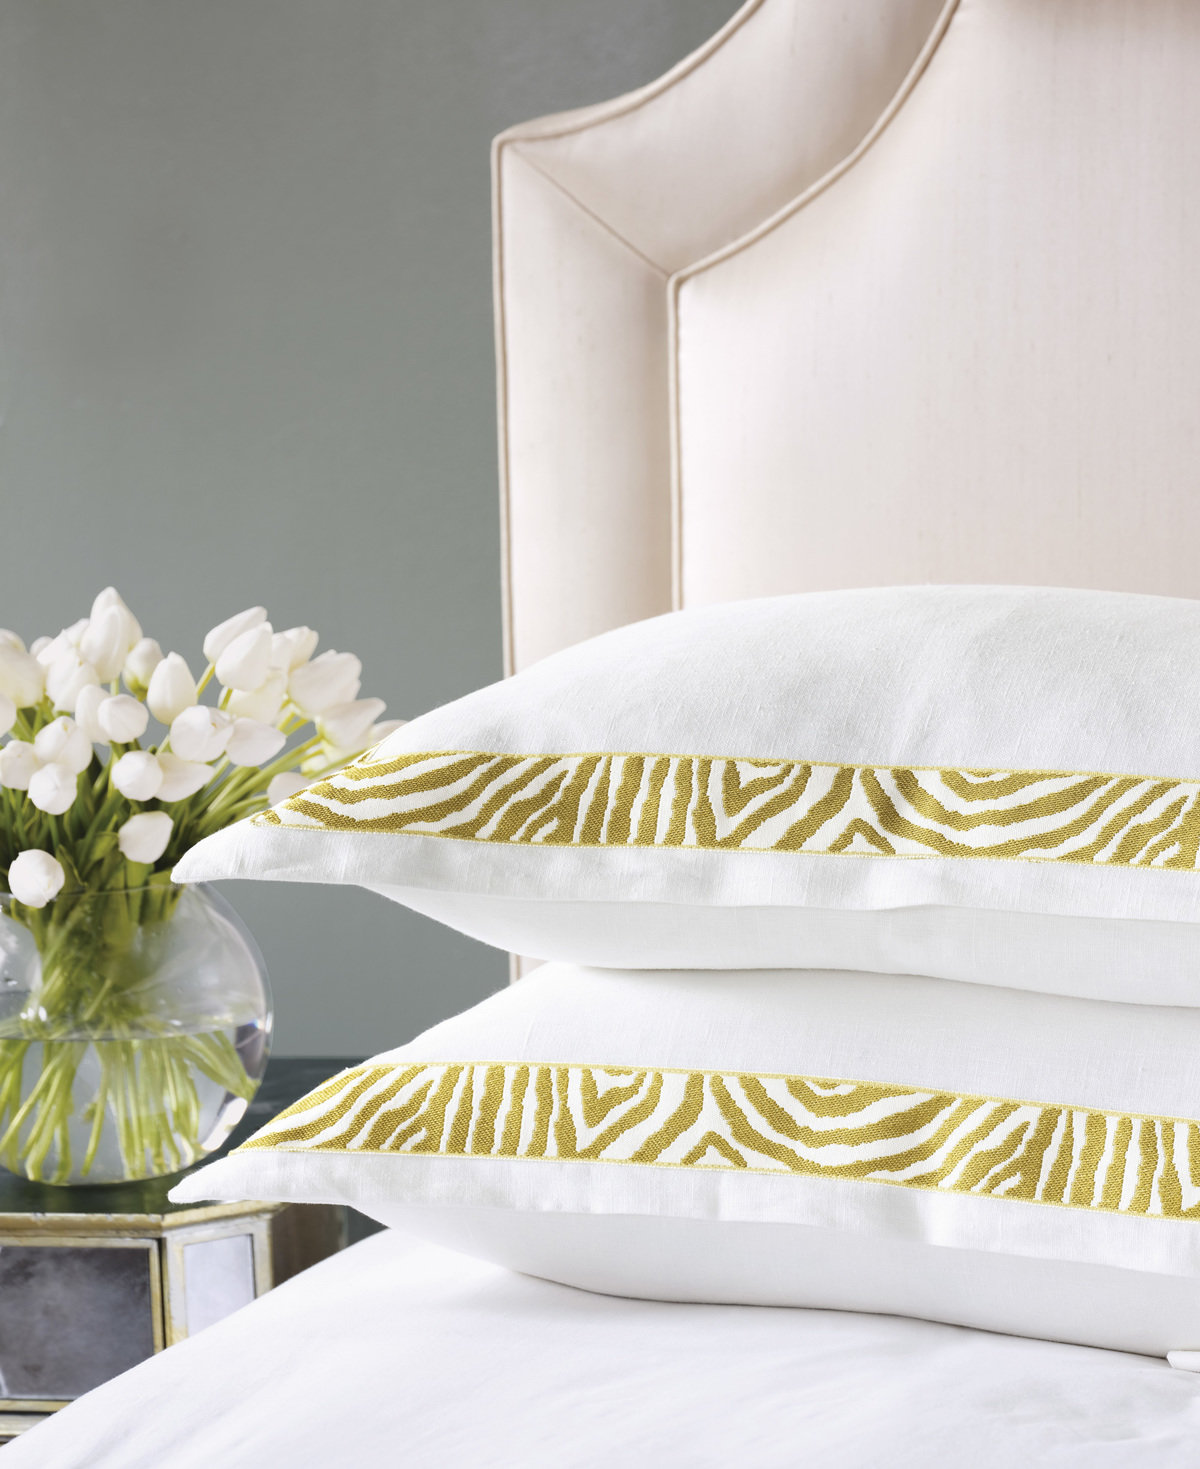 Alexa hampton eastern accent bedding ashbury ashbury pillow prop 01 1200 xxx q85